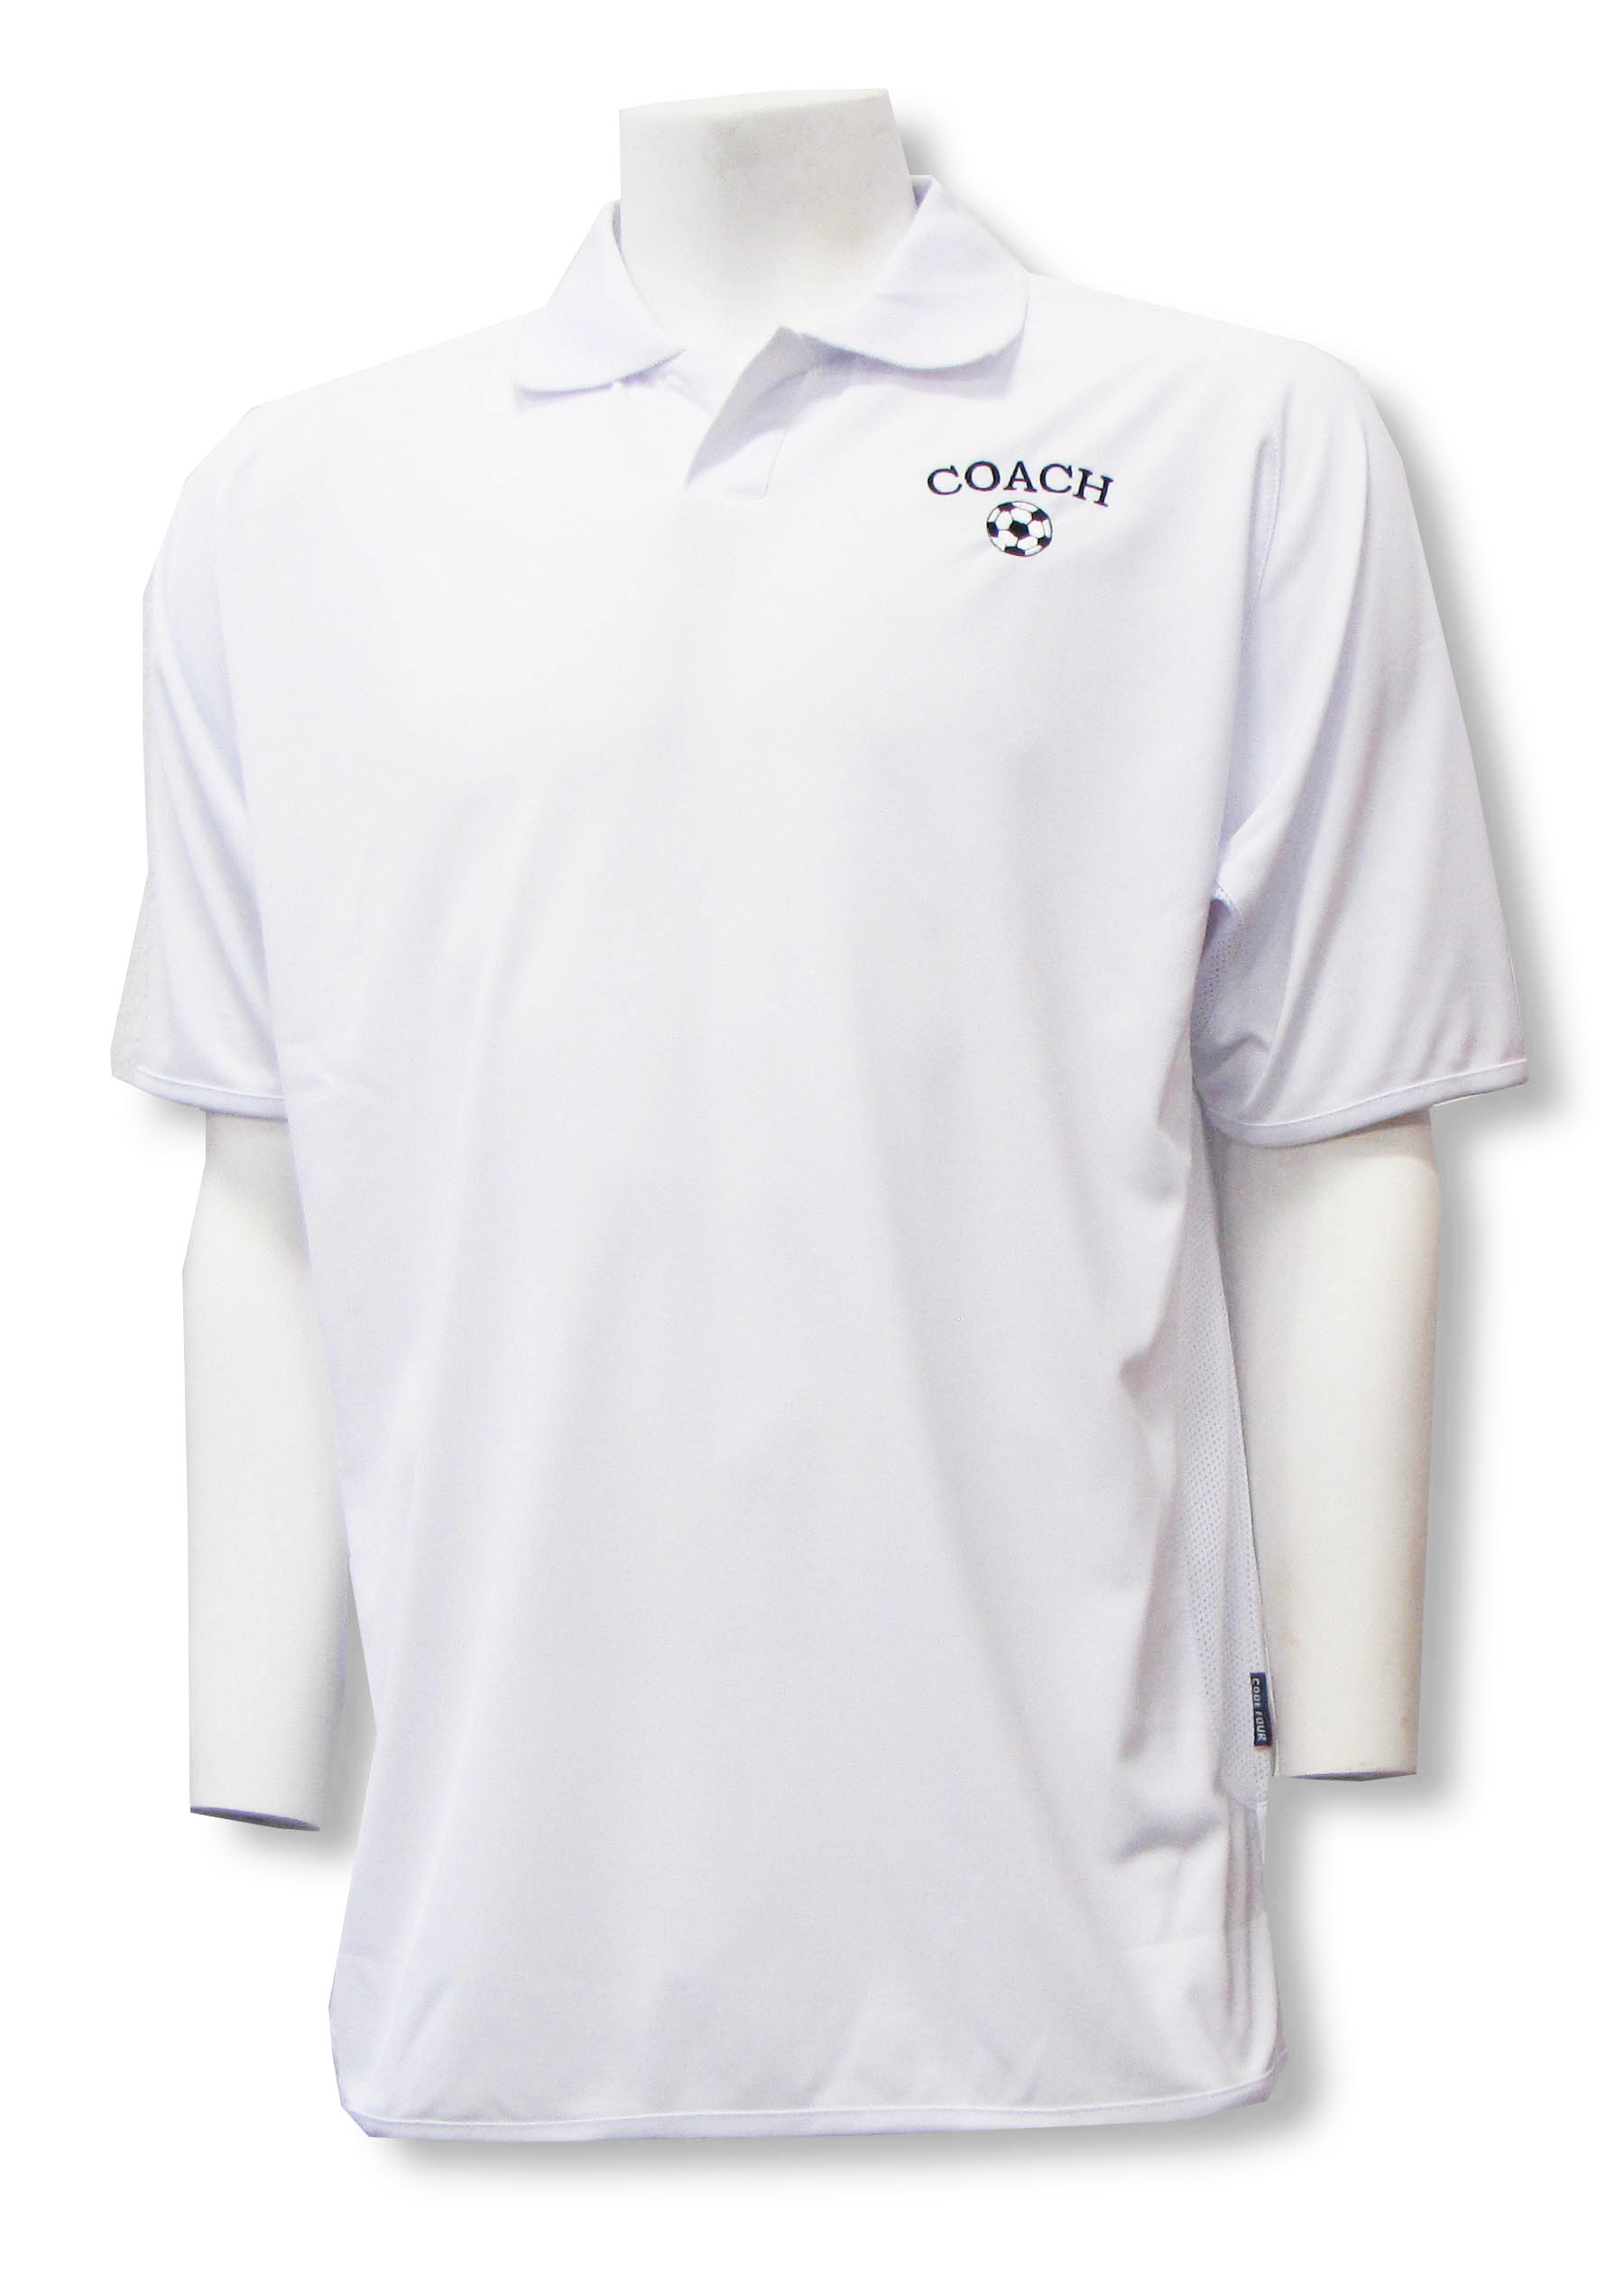 Soccer Coach embroidered polo in white by Code Four Athletics